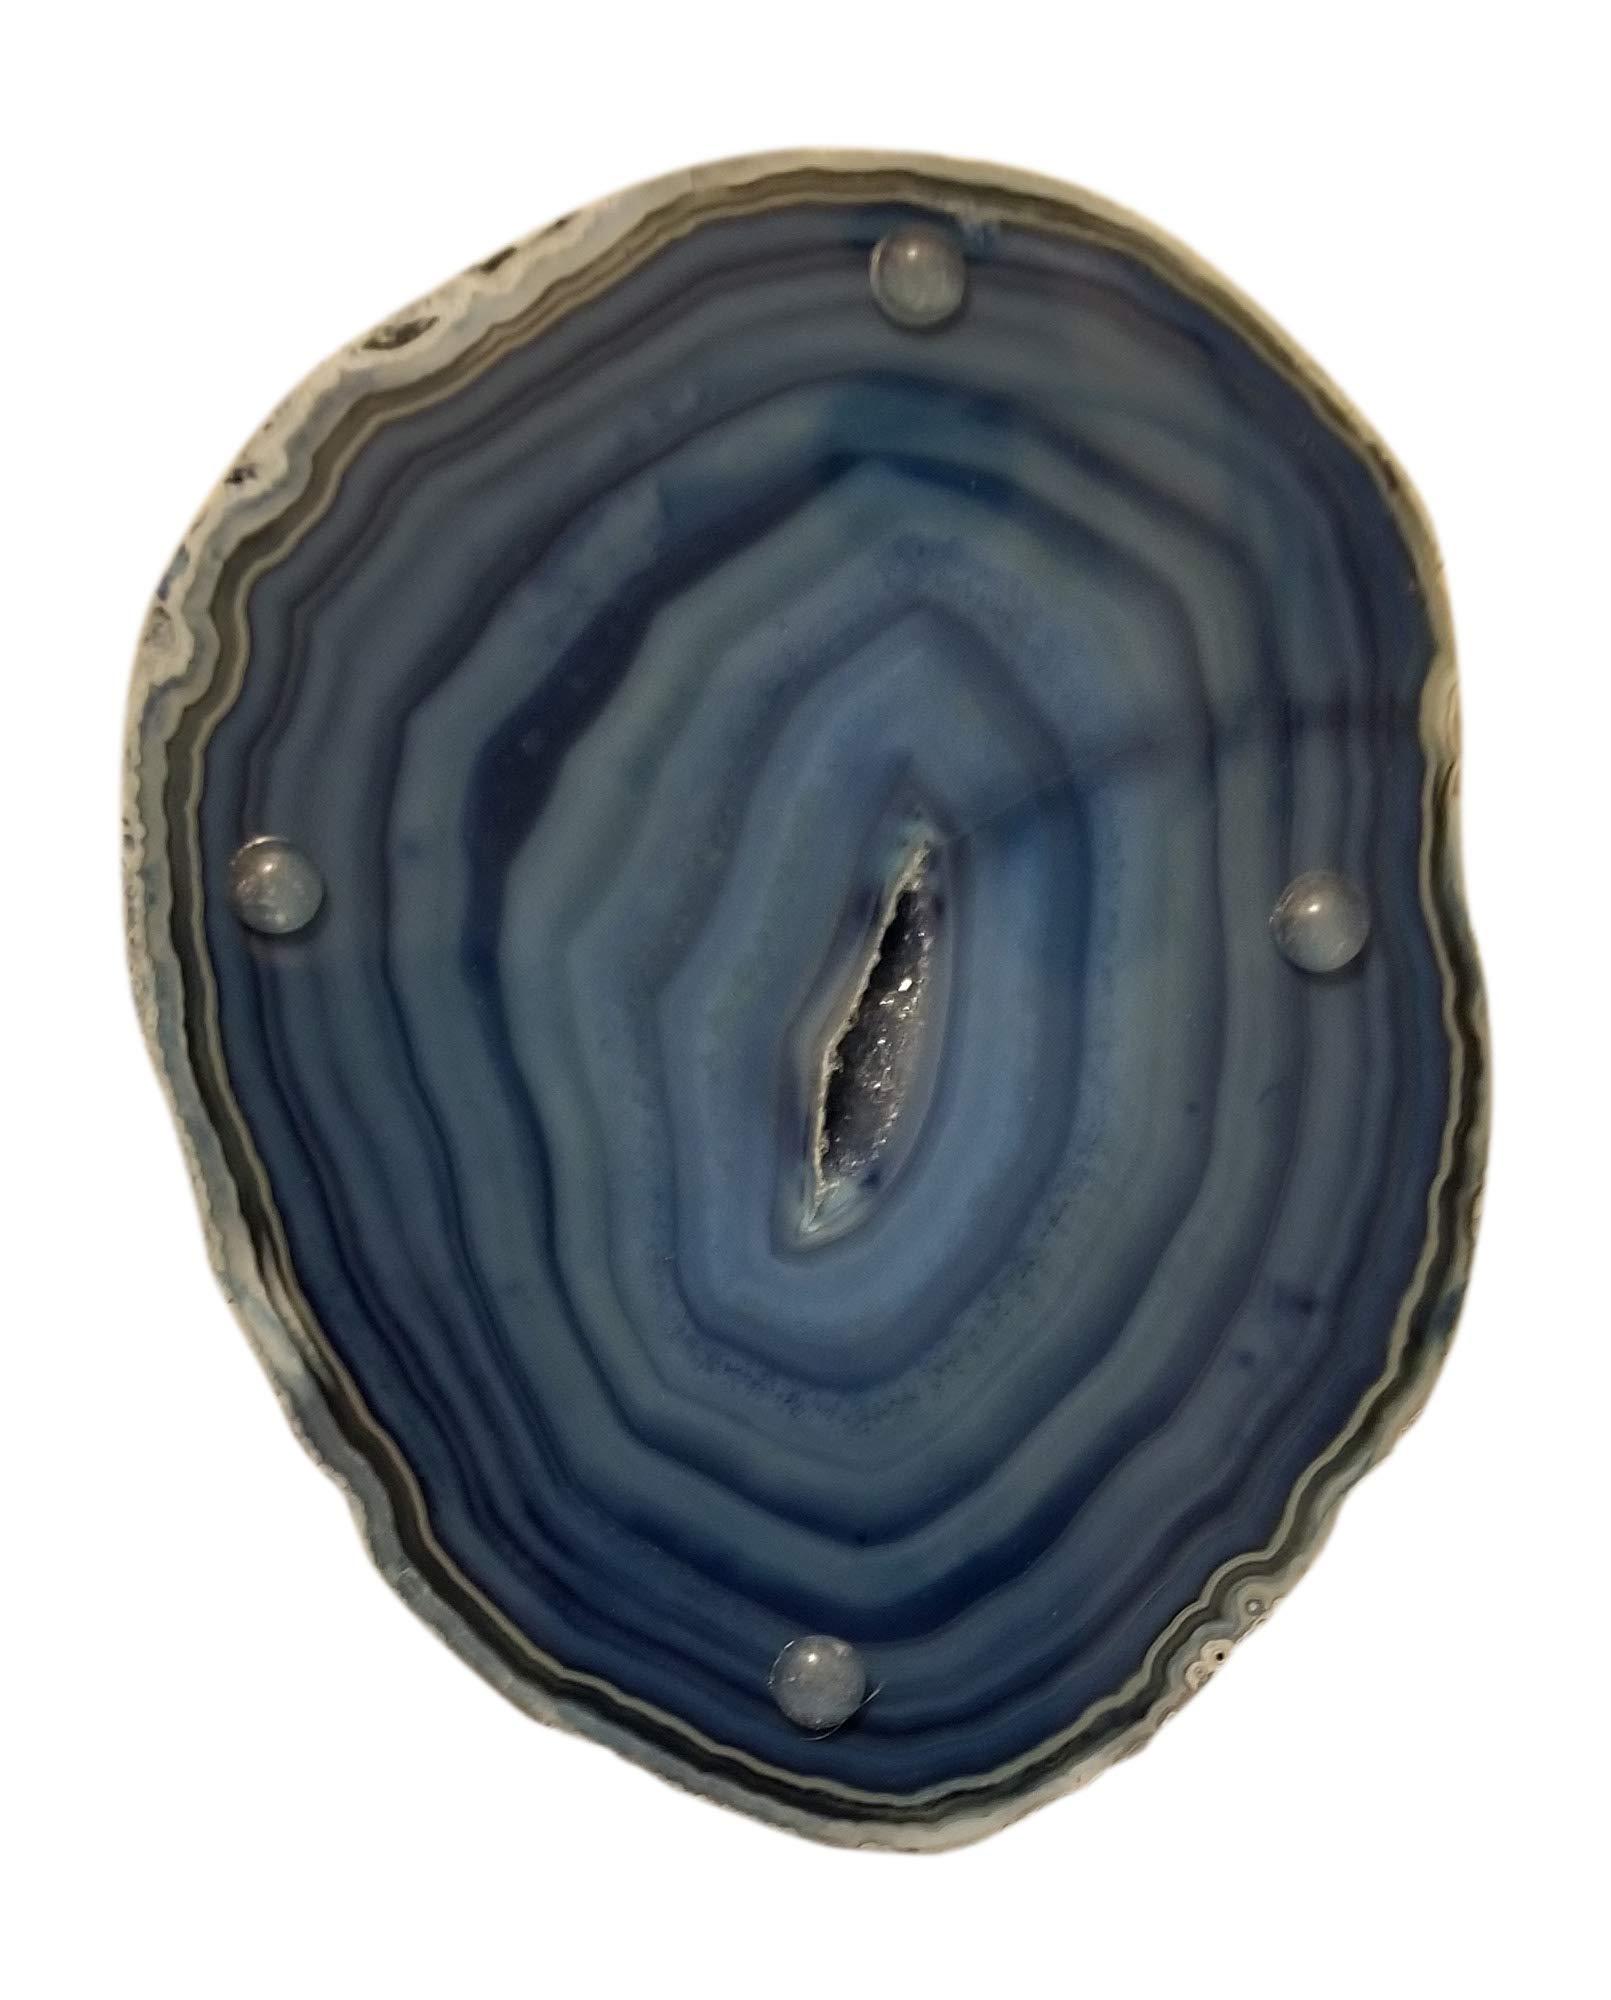 Natural Brazilian Agate Stone Coasters, Bookends and Wind Chimes Set, Incl 4 Large Coasters 4''-5'', 1 Pair of Bookends 2-3 lbs and Wind Chimes, Free Microfiber Polishing Cloth and 2 Mugs (blue) by Enchanted Dwelling (Image #5)